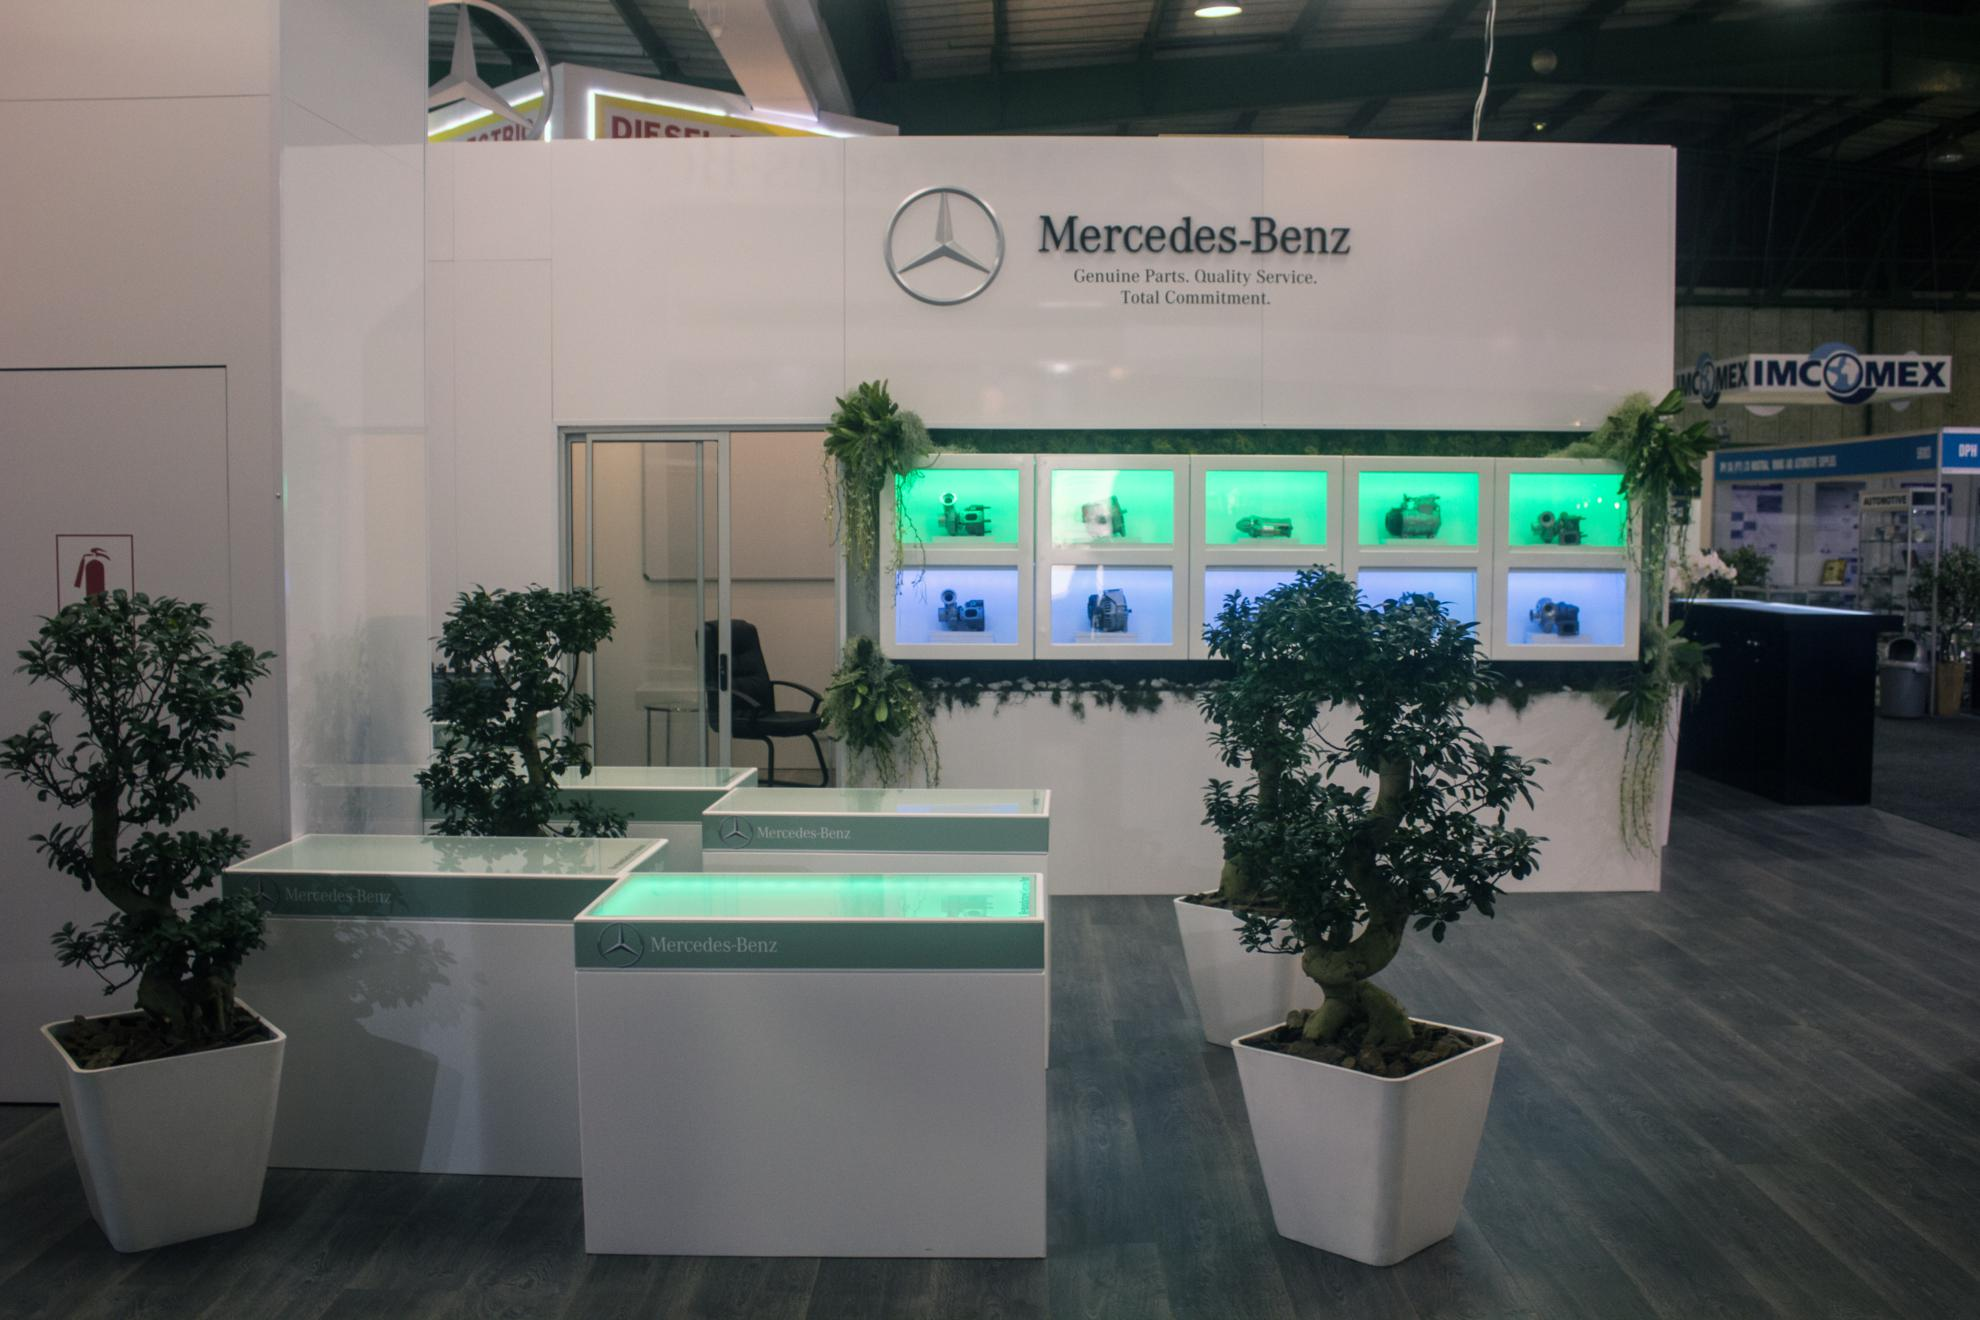 Mercedes-Benz Display at Automechanika